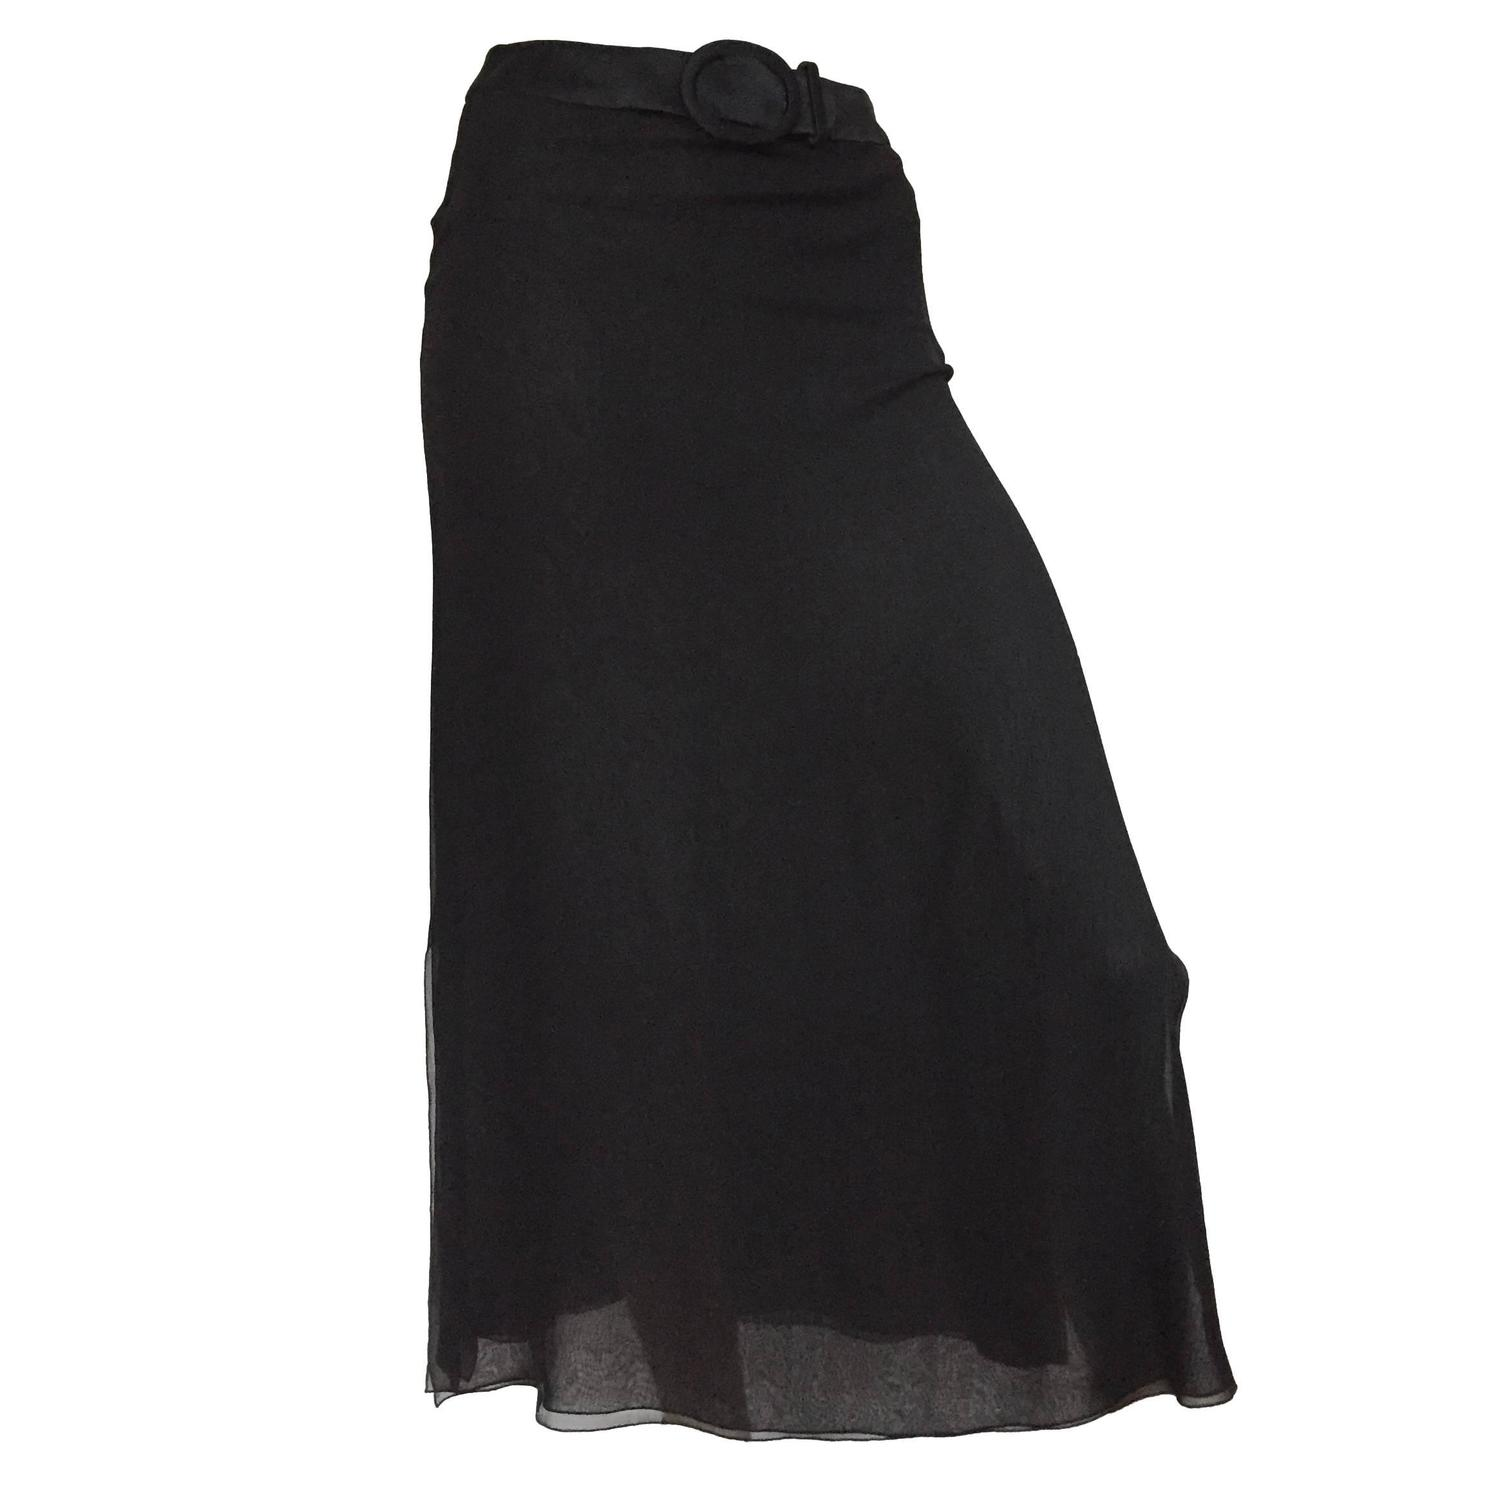 Find long black skirt at Macy's Macy's Presents: The Edit - A curated mix of fashion and inspiration Check It Out Free Shipping with $49 purchase + Free Store Pickup.